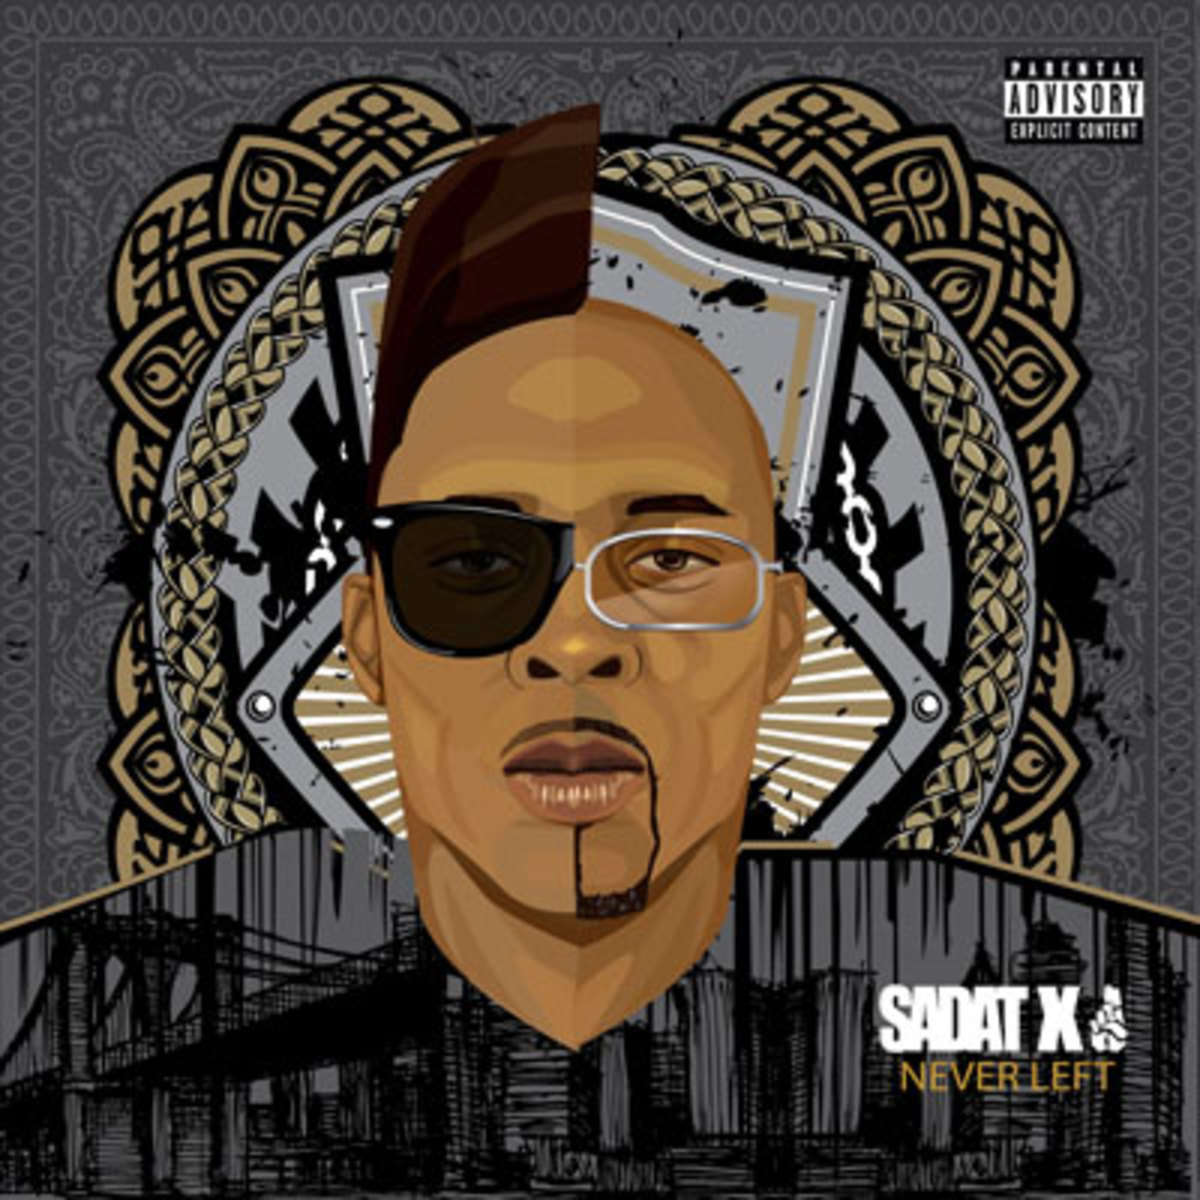 sadatx-neverleft.jpg